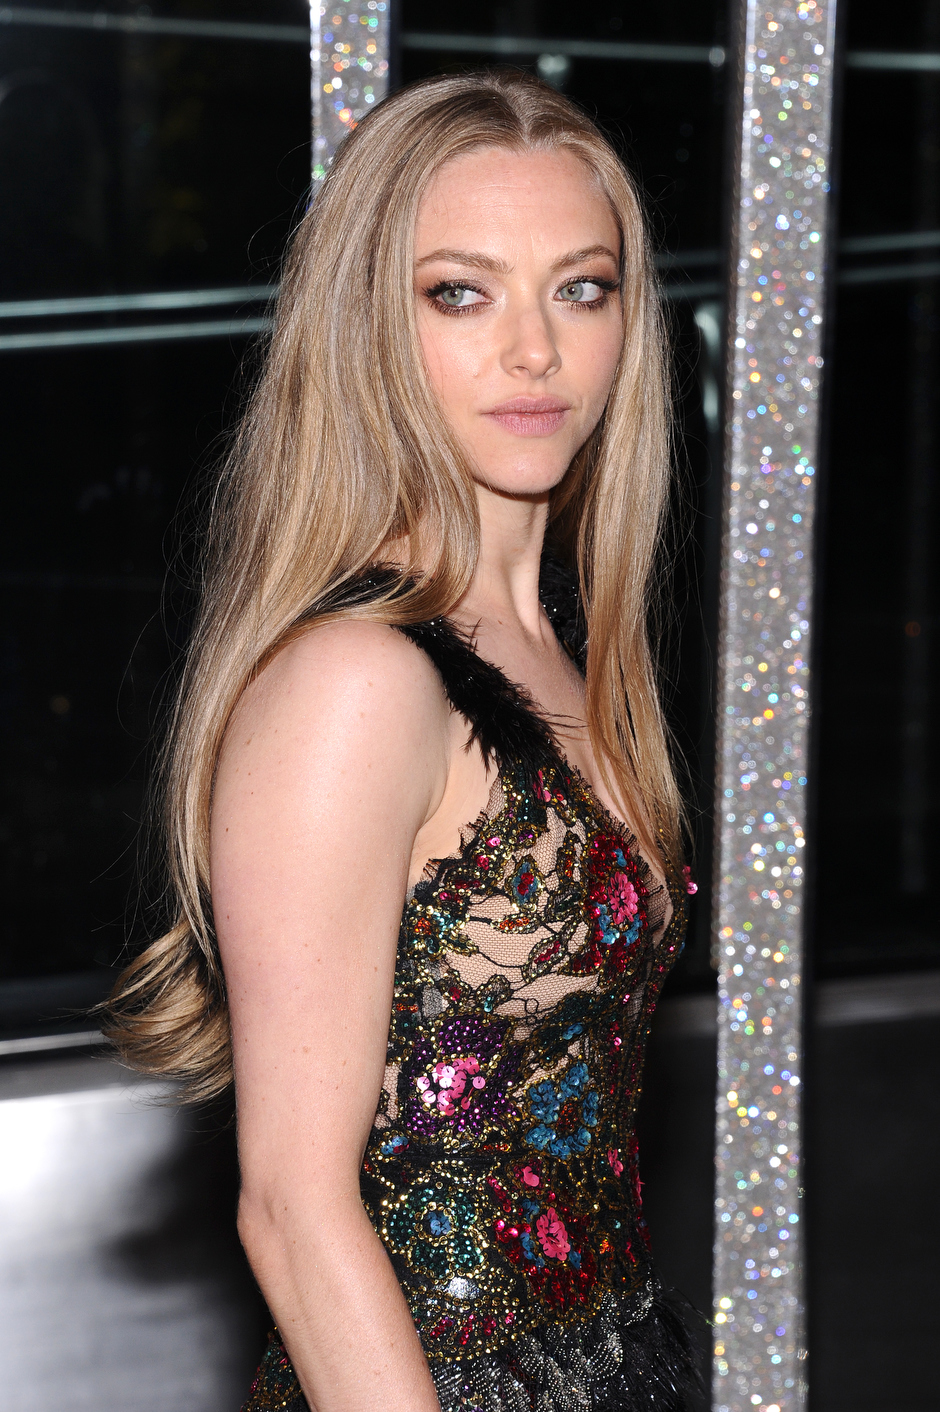 . Amanda Seyfried attends the 2015 CFDA Fashion Awards at Alice Tully Hall on Monday, June 1, 2015, in New York. (Photo by Charles Sykes/Invision/AP)